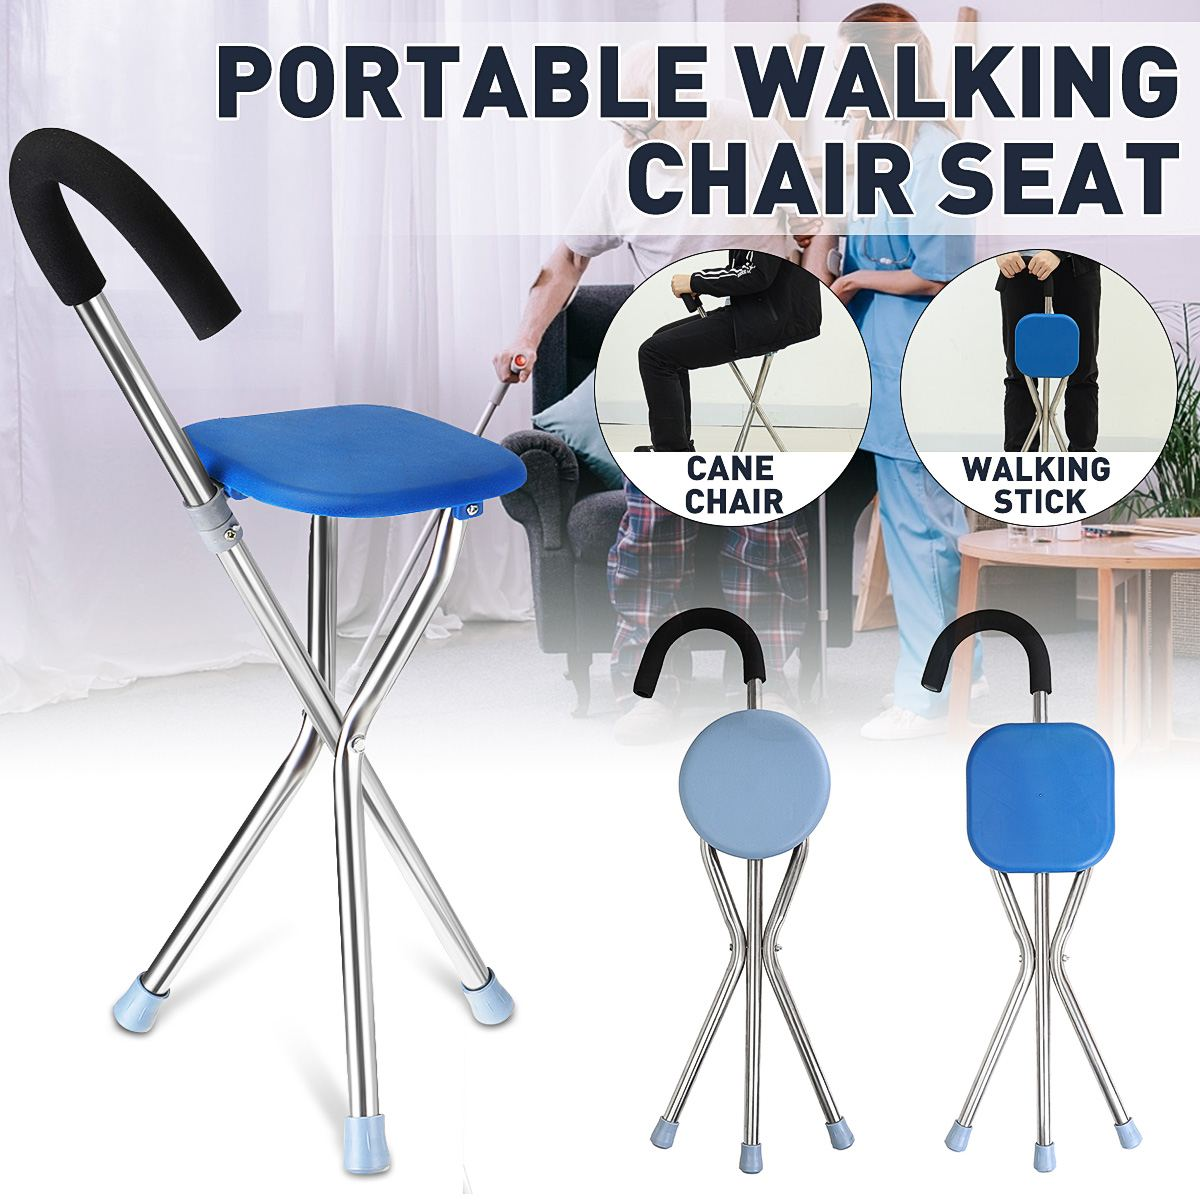 Folding Walking Cane Rest Stainless Steel Walking Stick Chair Seat Non Slip Tripod Cane For Elder Outdoor Hiking Climbing Crutch